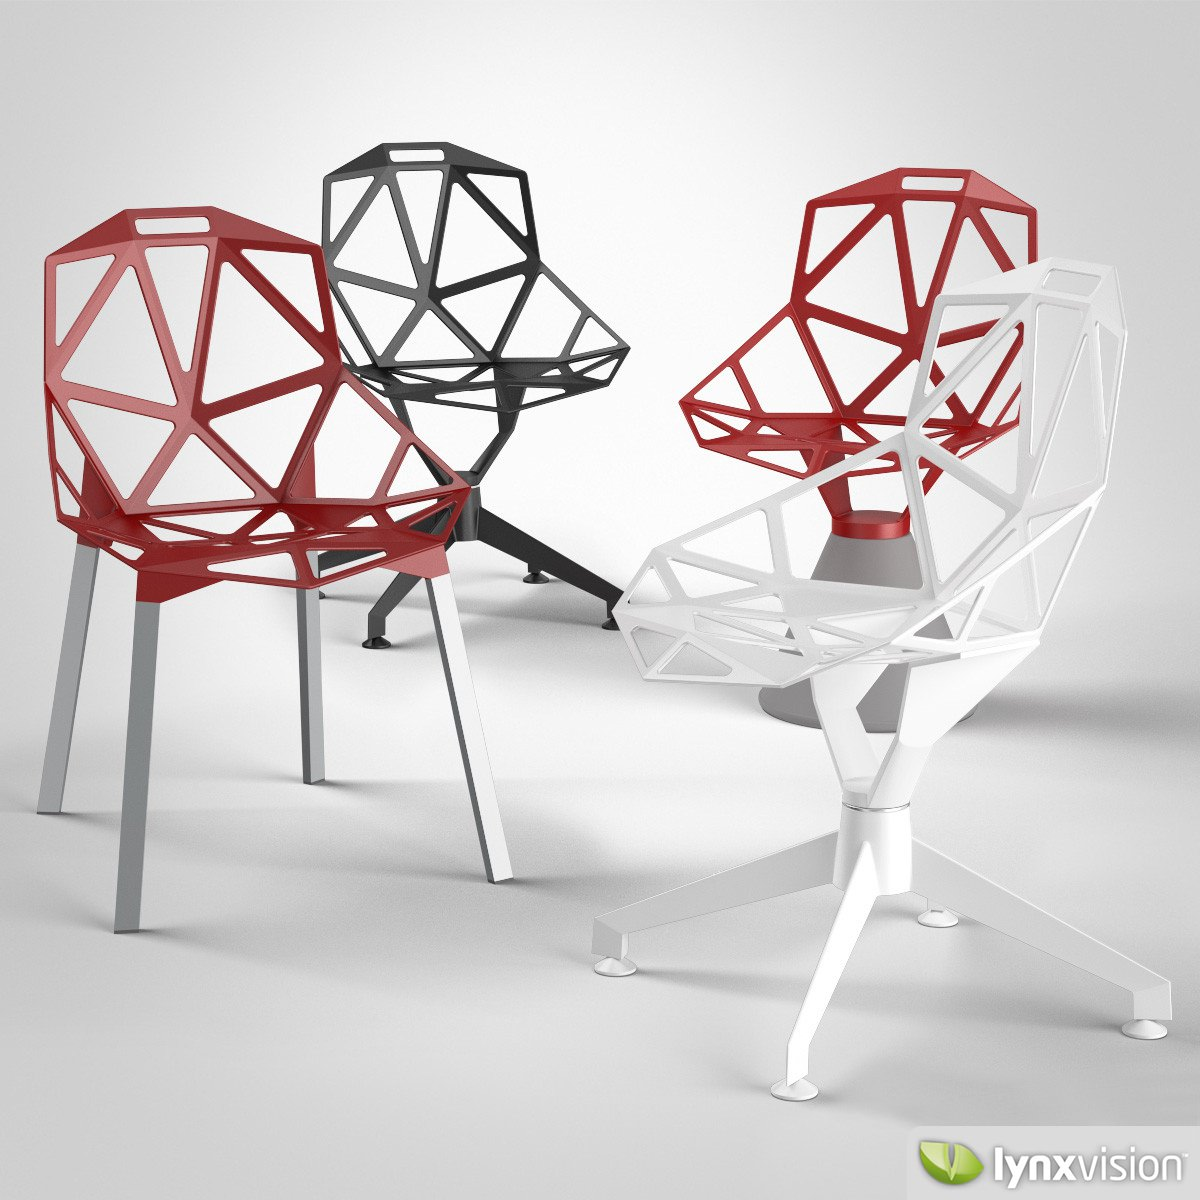 Chair one magis 3d model max obj fbx for Magis chair one